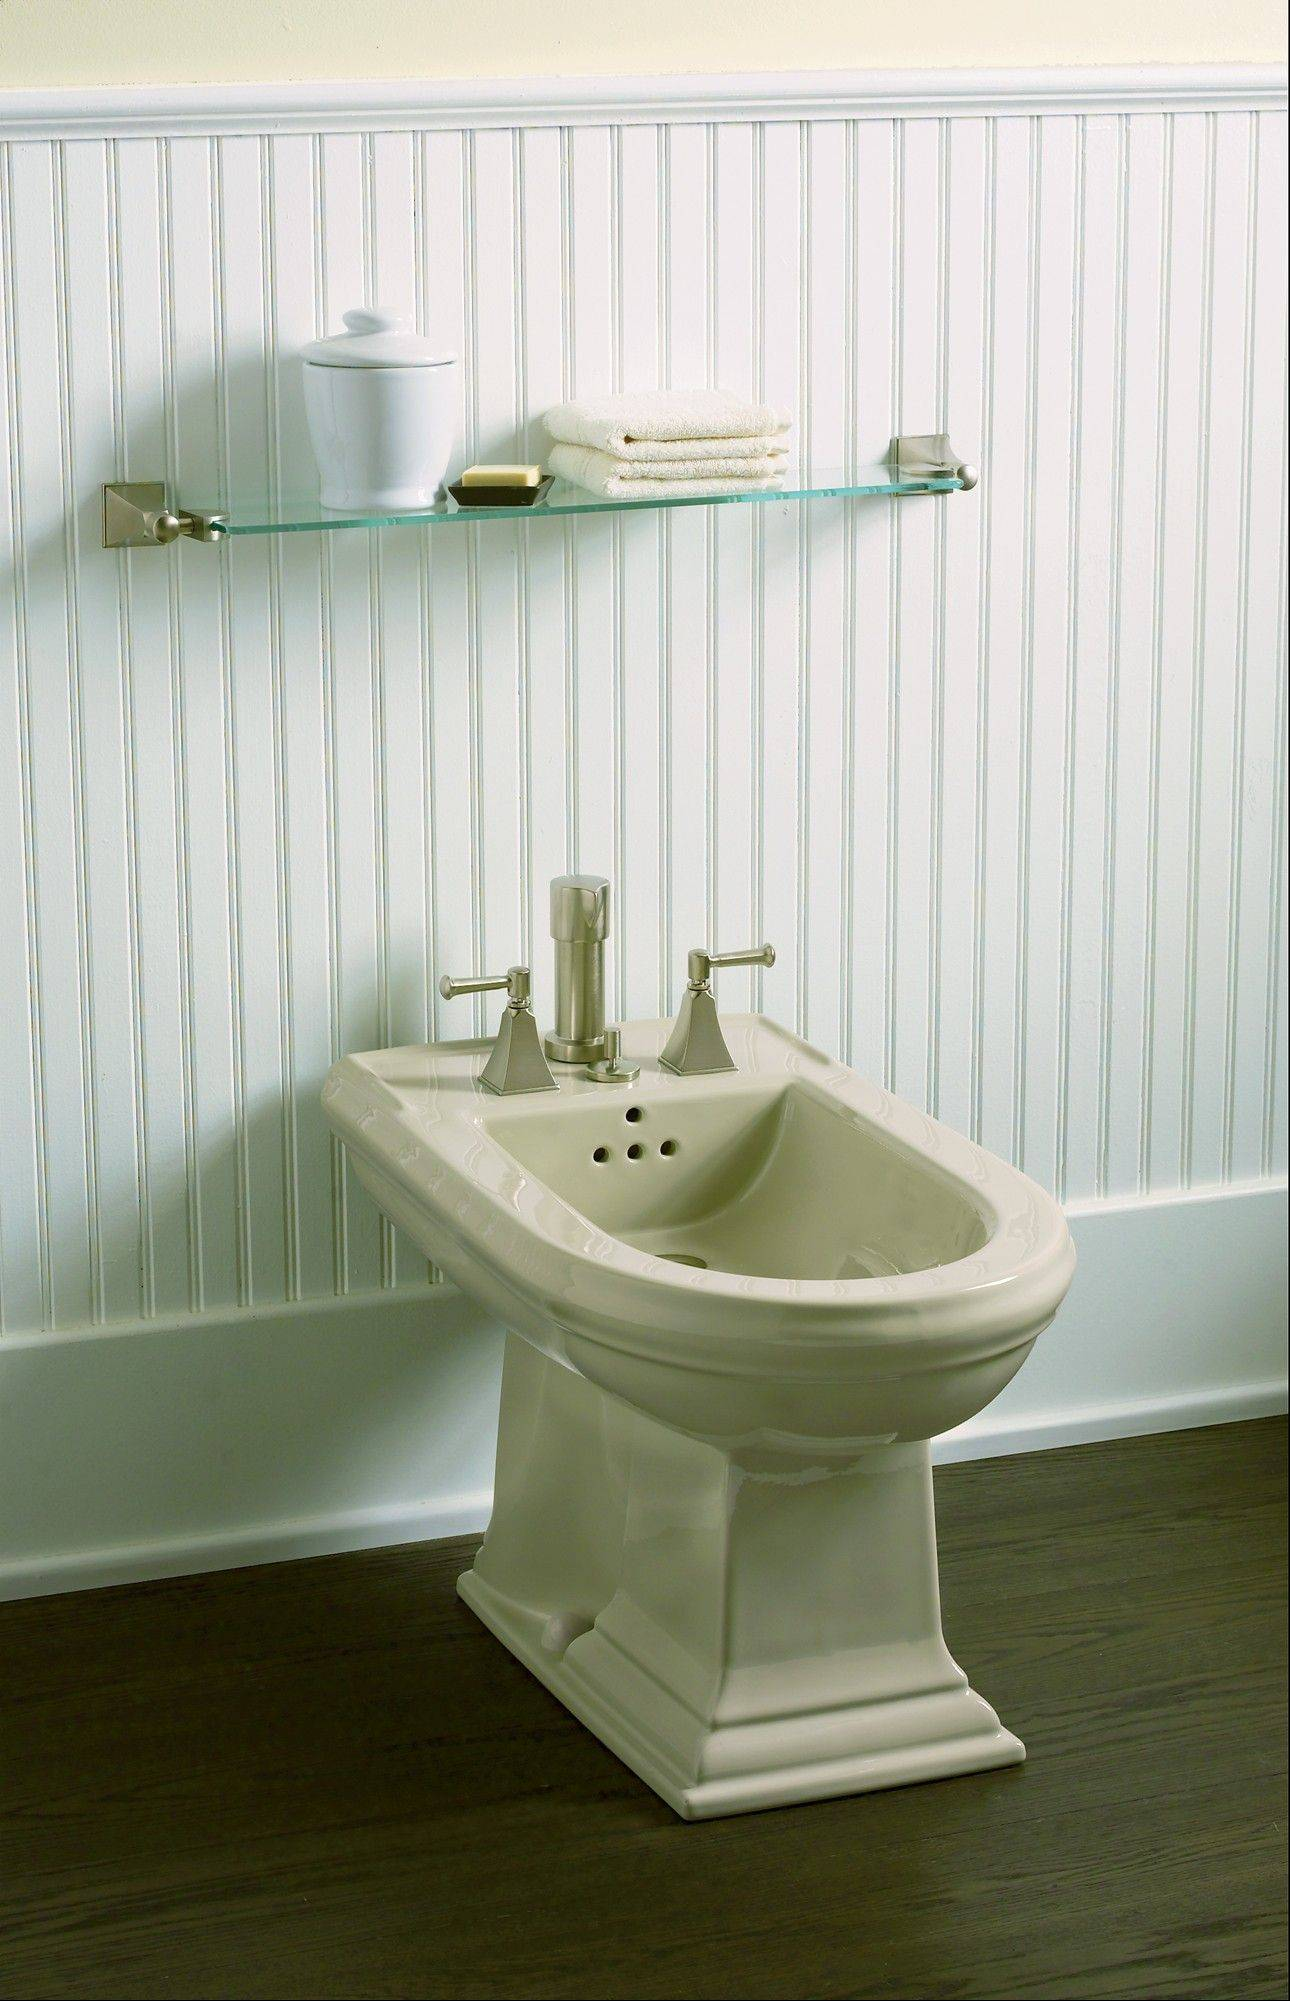 Having a toilet/bidet combo can save you some room since you�re installing only one plumbing fixture. But consult a licensed plumber before you start.